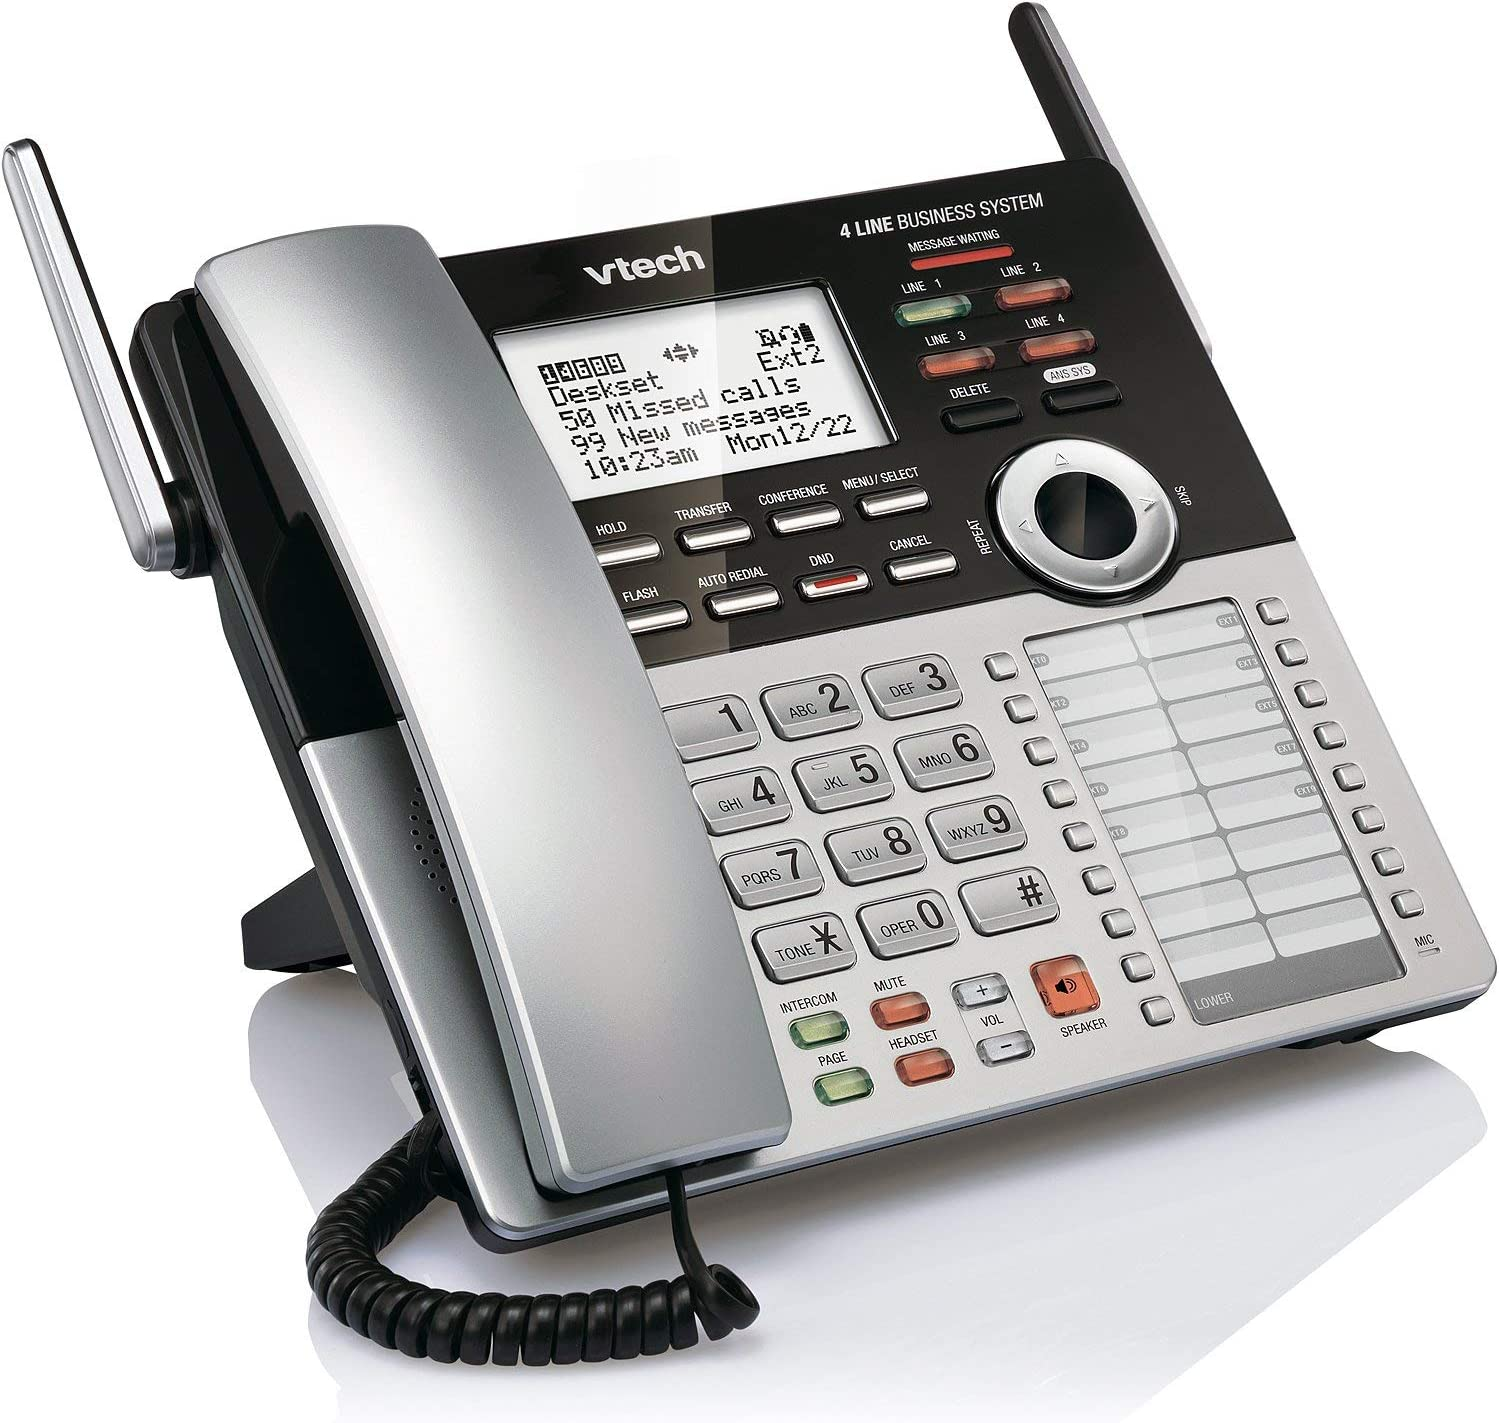 VTech CM18245 Extension Deskset for VTech CM18845 Small Business Office Phone System (Renewed)